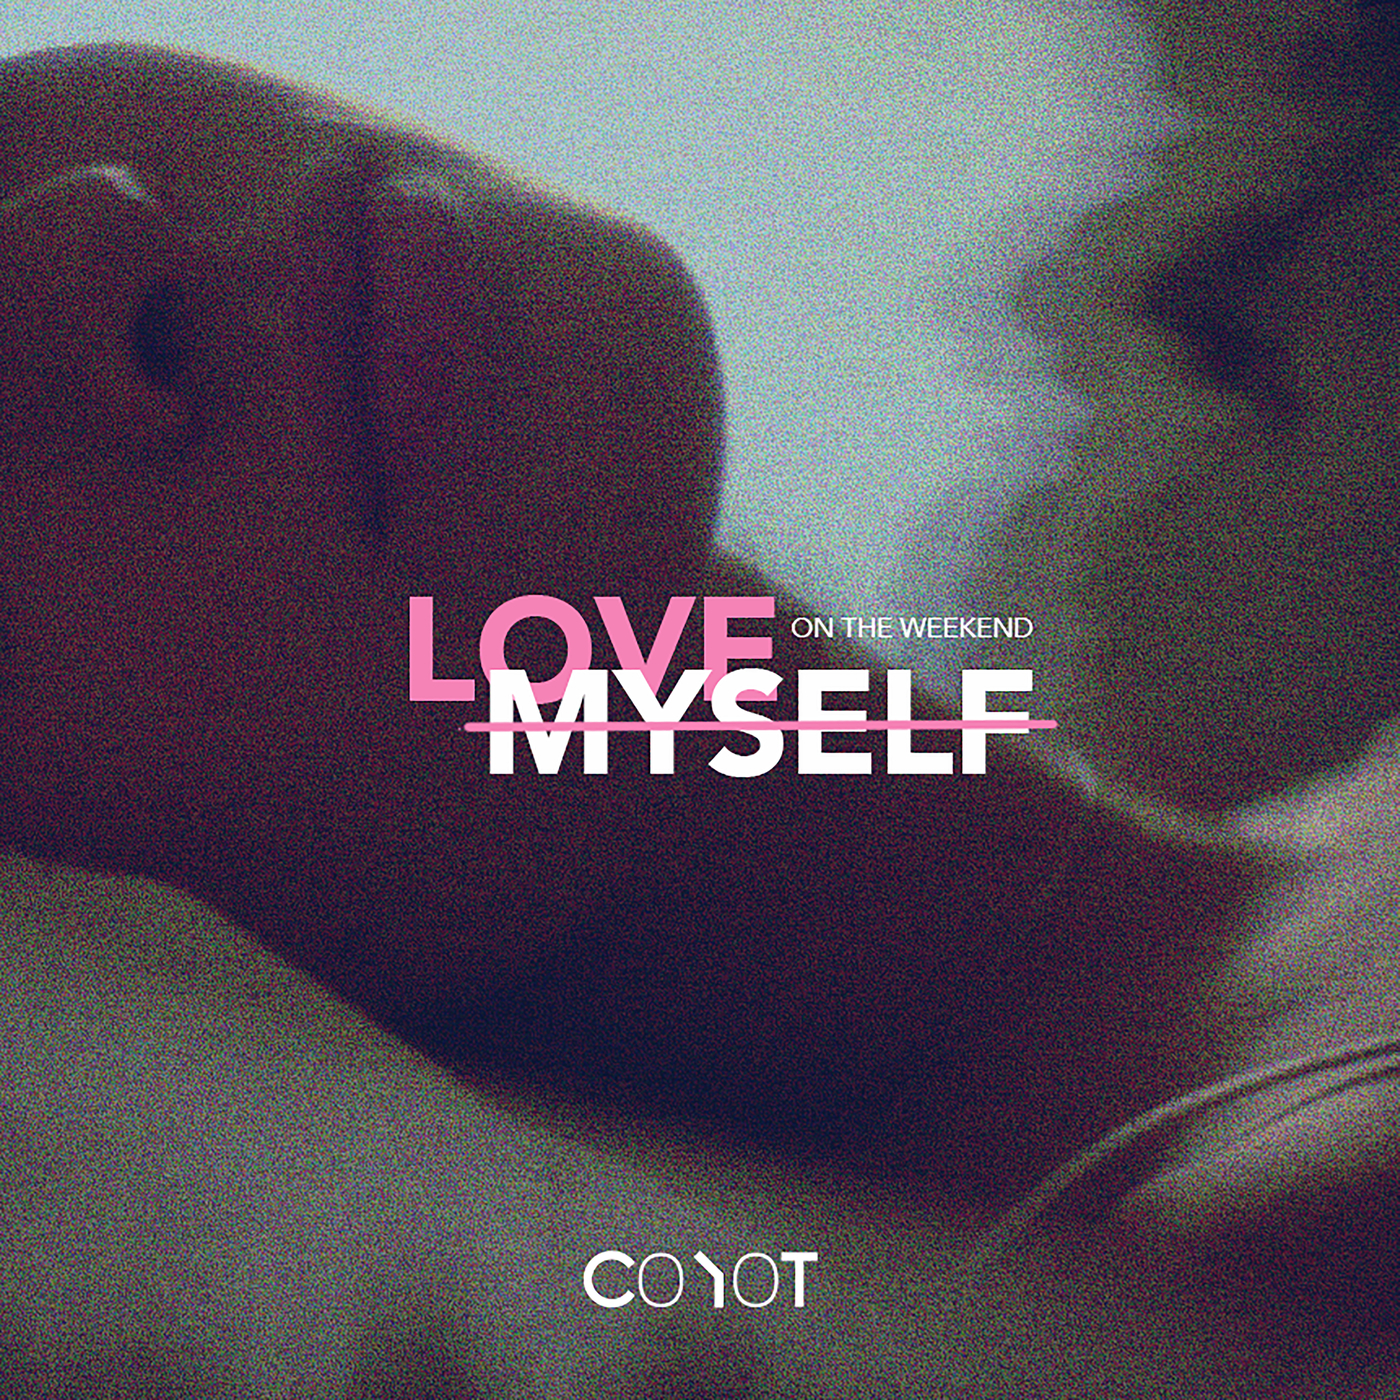 Love Myself On The Weekend - Coyot